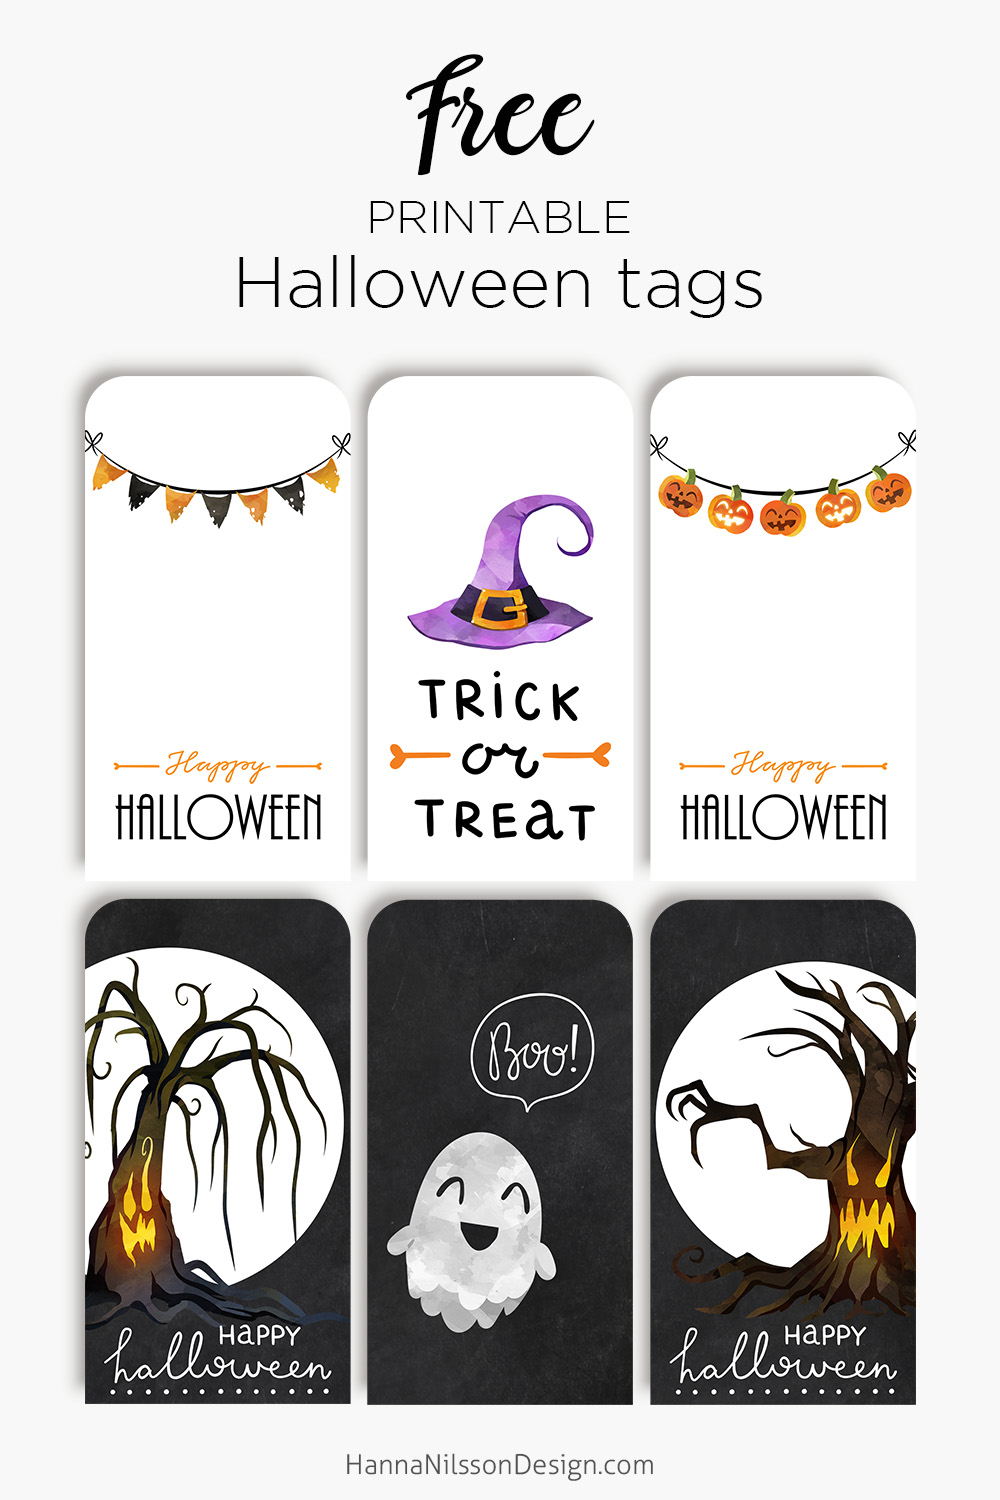 photograph regarding Free Printable Halloween Gift Tags called Delighted Halloween tags Totally free printable creepy lovable